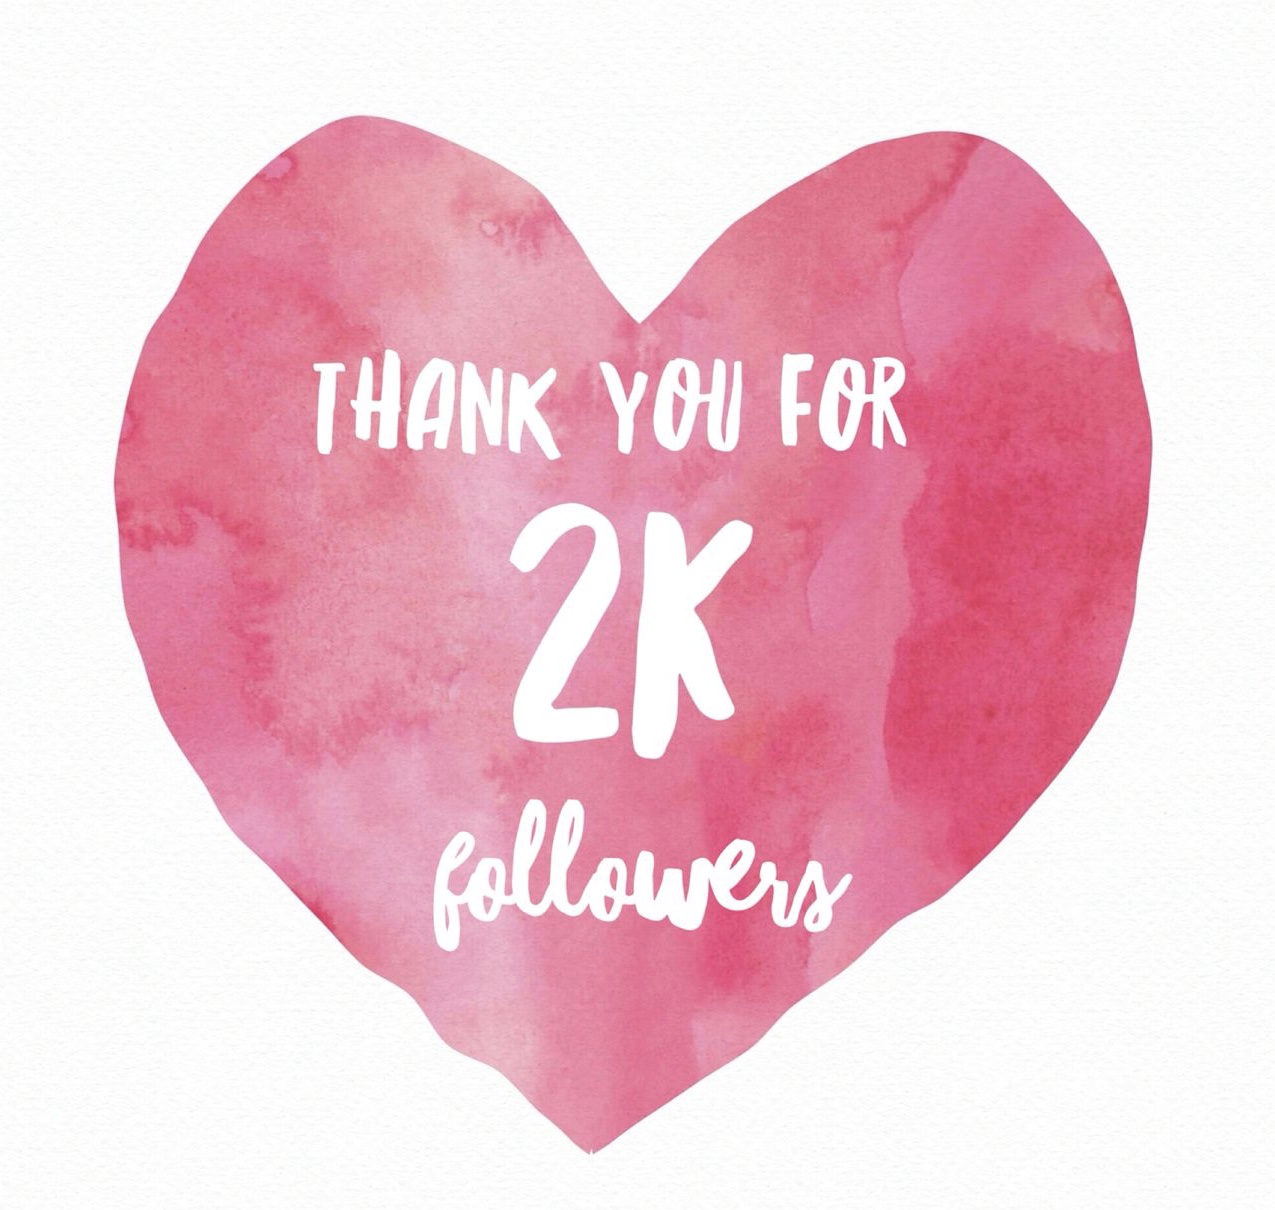 2k followers heart barefoot athleisure